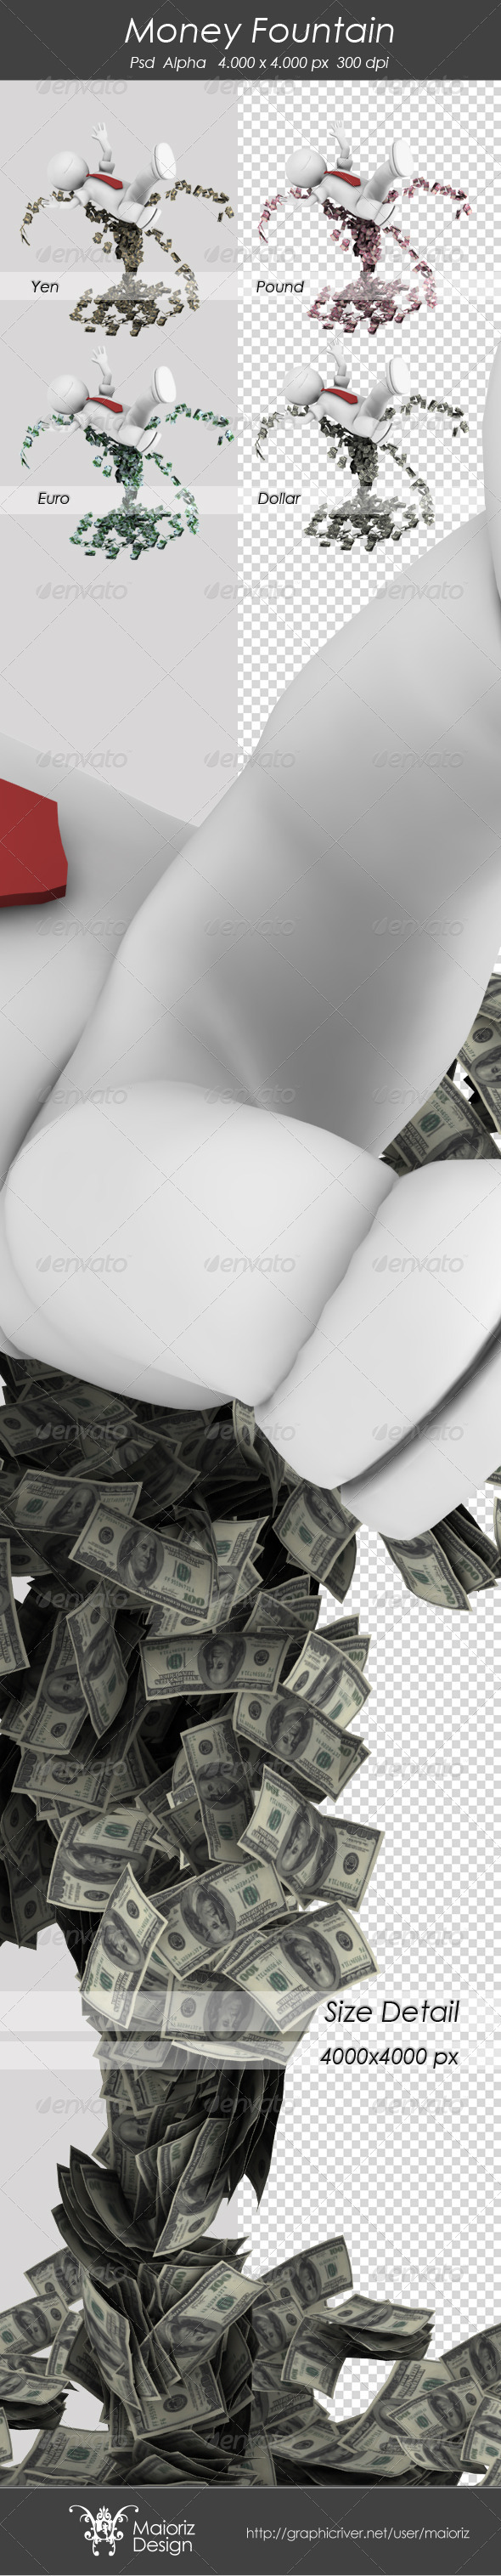 Money Fountain - Miscellaneous Backgrounds